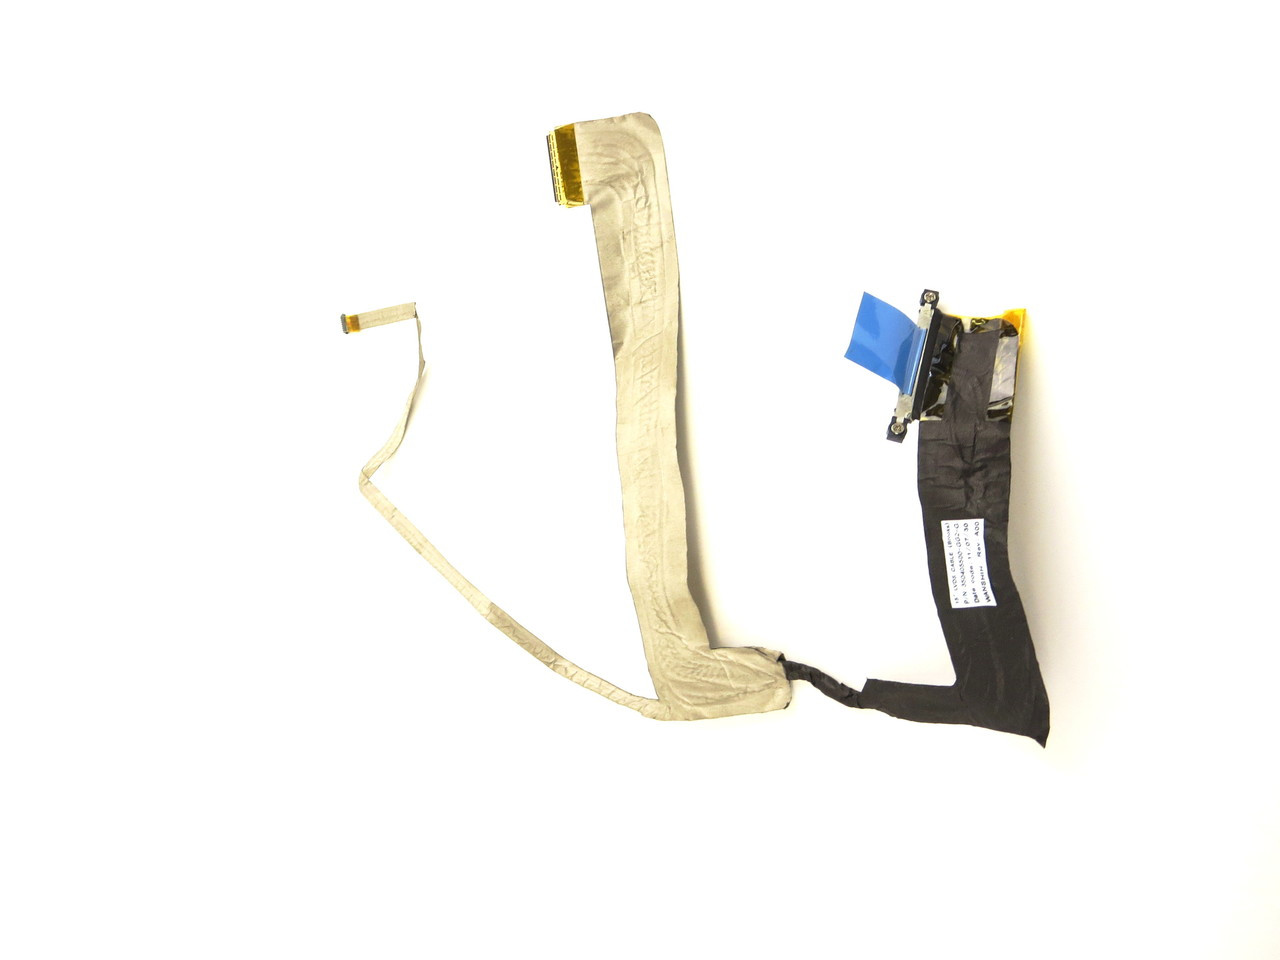 Dell Precision M4600 LED LCD Screen Video Cable - 350405500-GG2-G